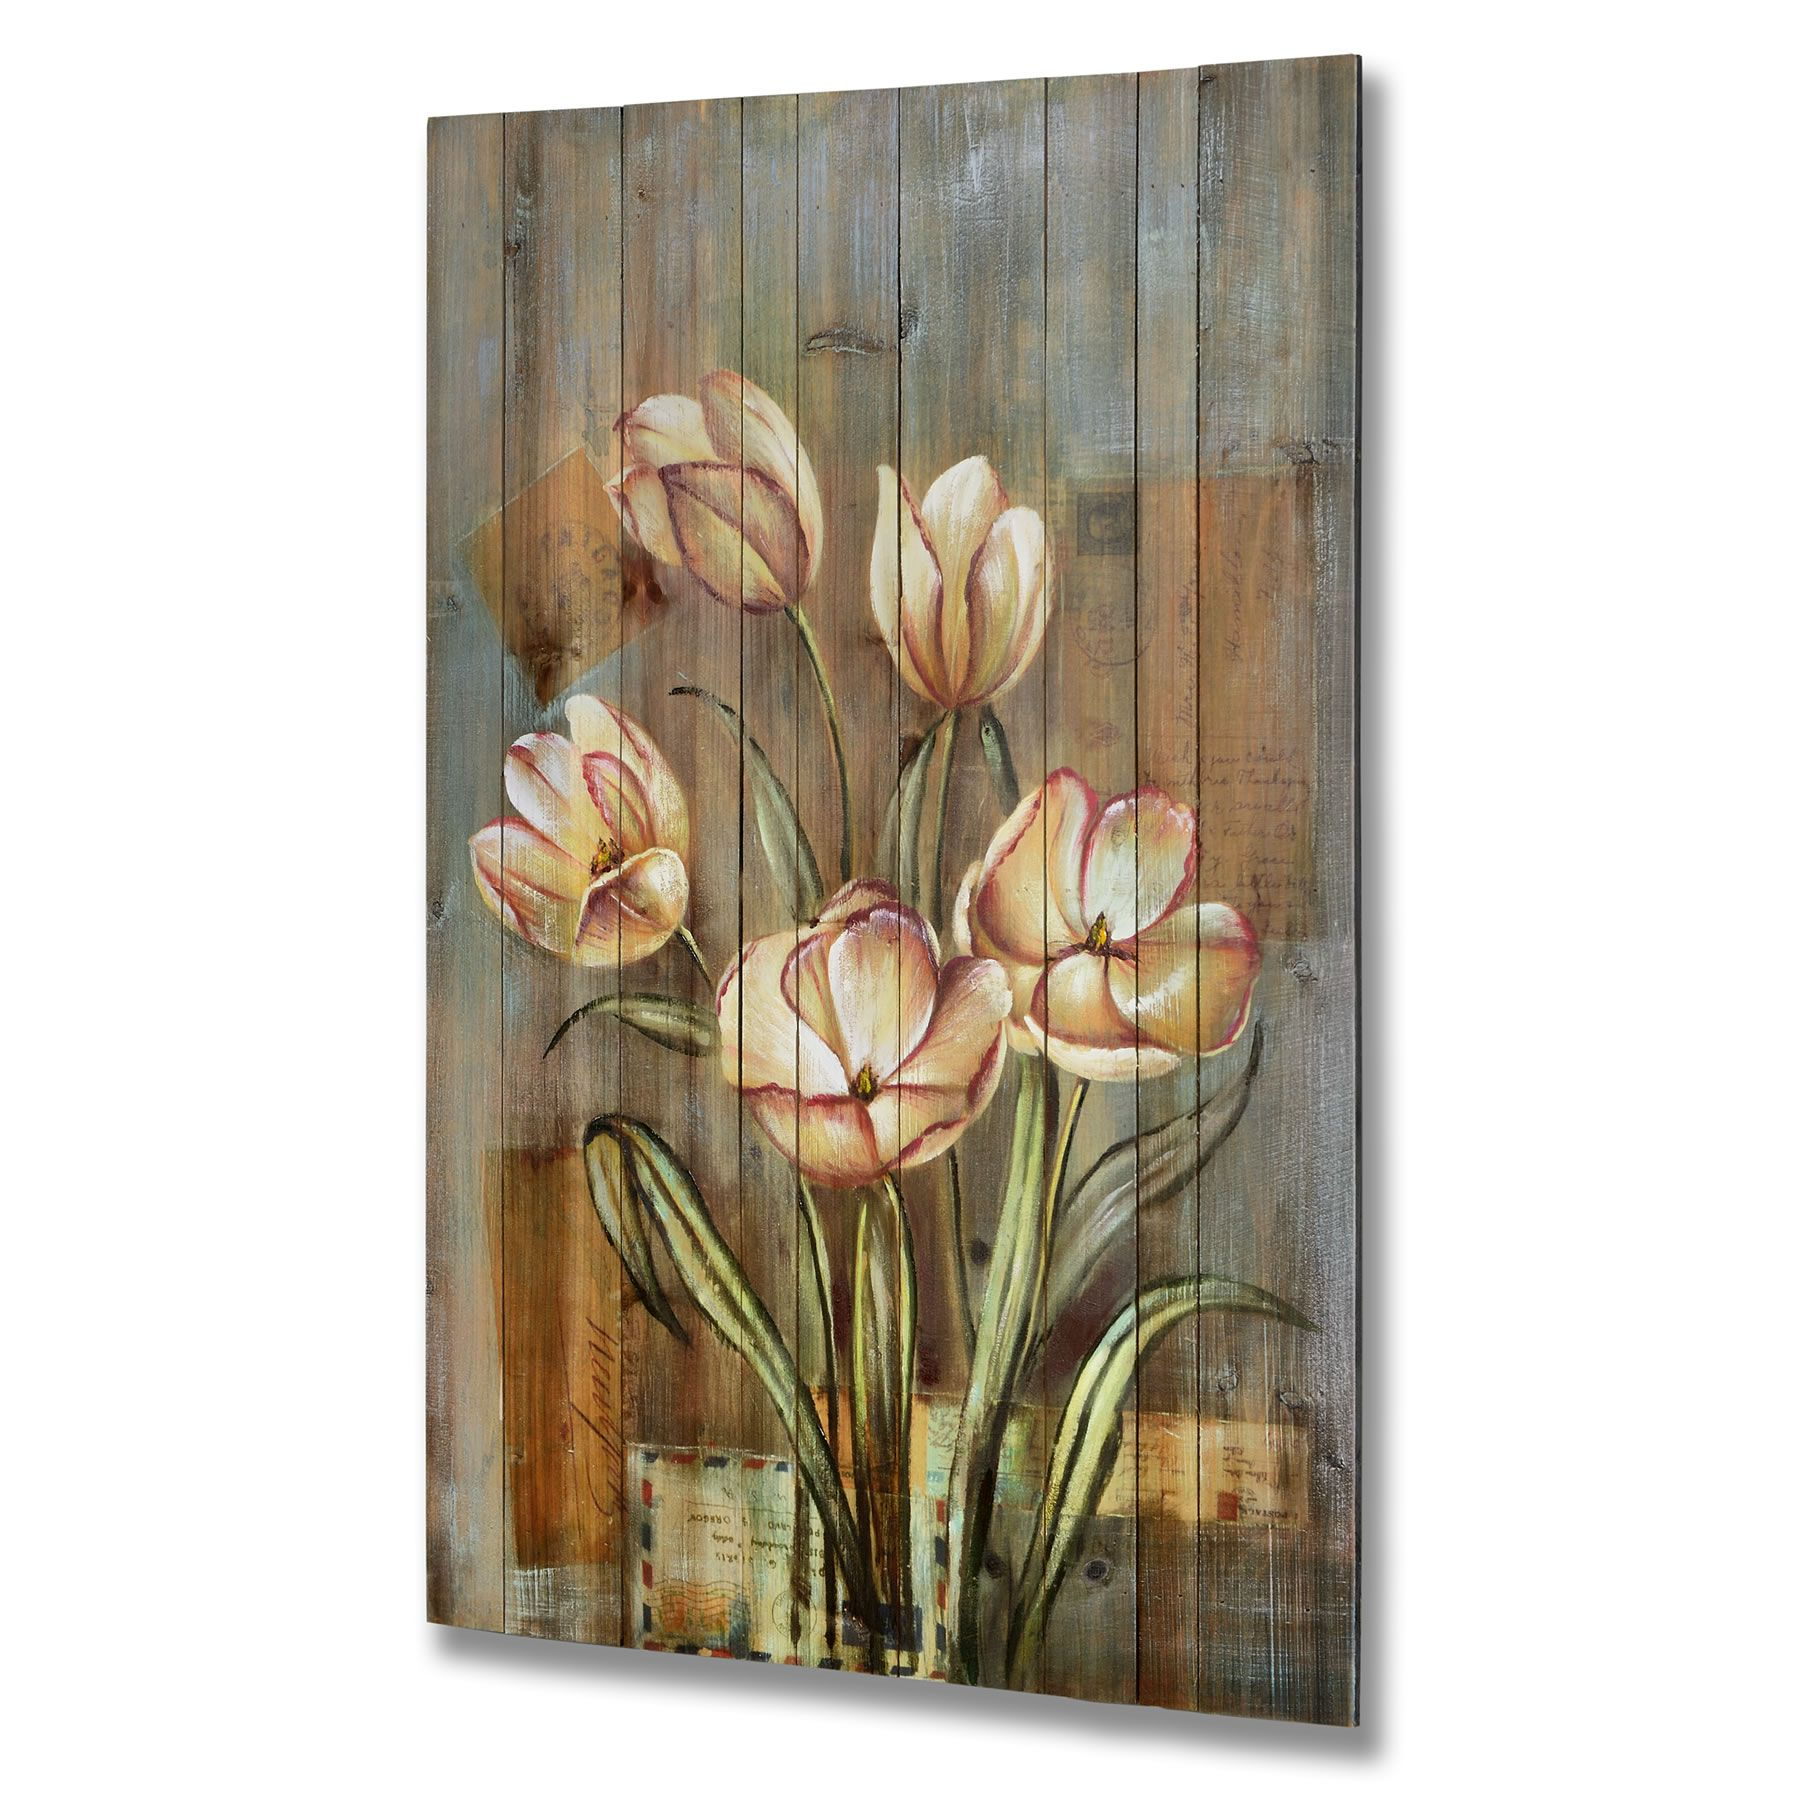 Art Painted On Wood Paintings On Wood Plank Handpainted Flower Painting On